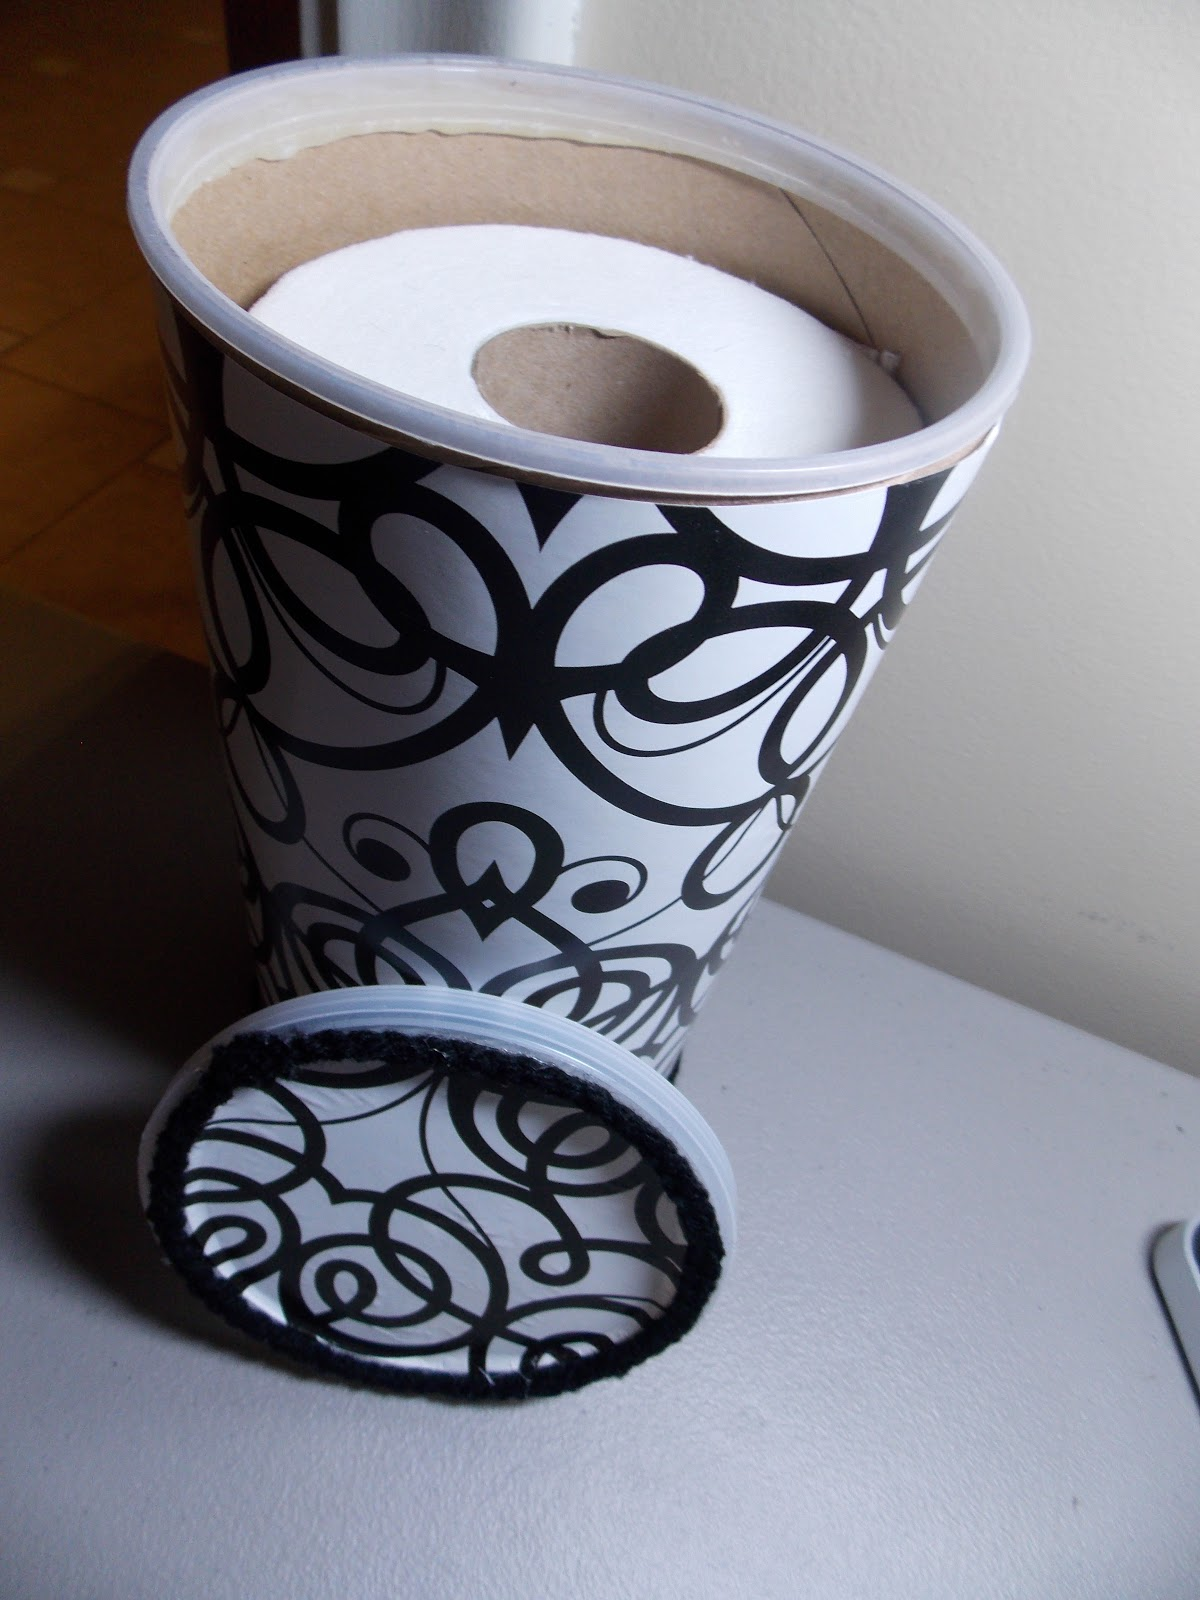 Keep calm and kerri on diy toilet paper holder - Toilet roll canister ...